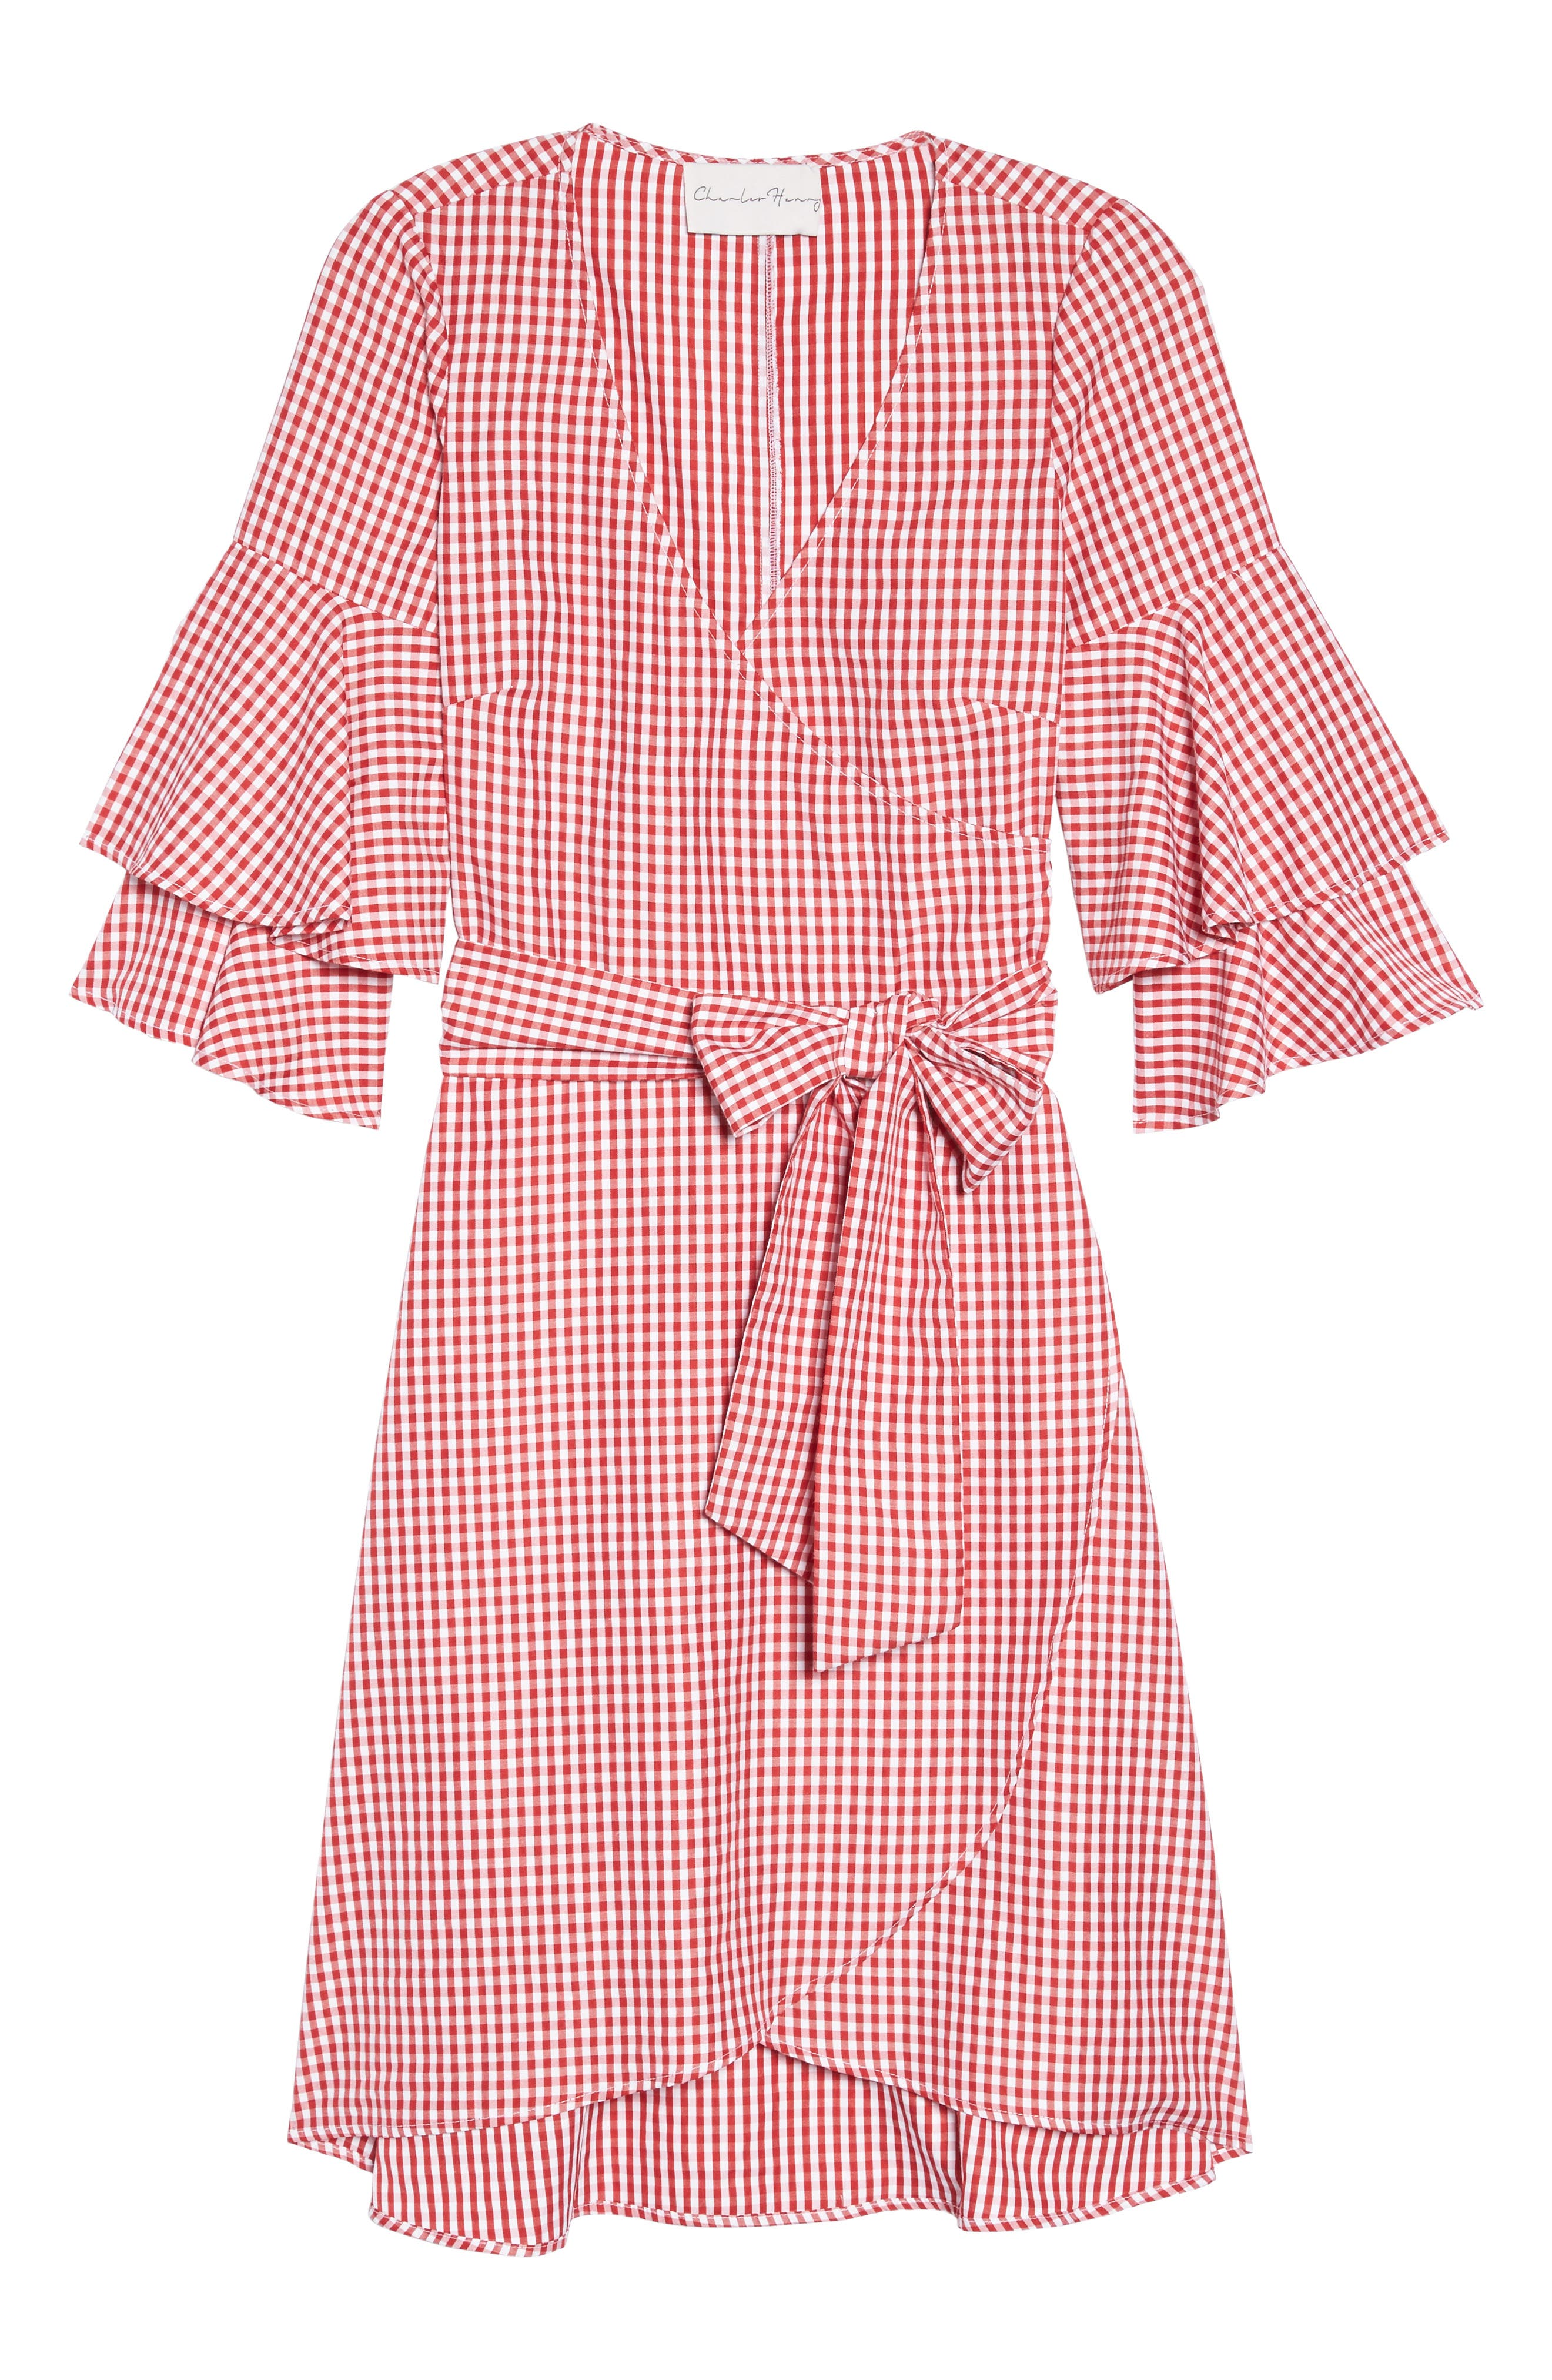 Ruffle Wrap Dress,                             Alternate thumbnail 7, color,                             Red/ White Gingham